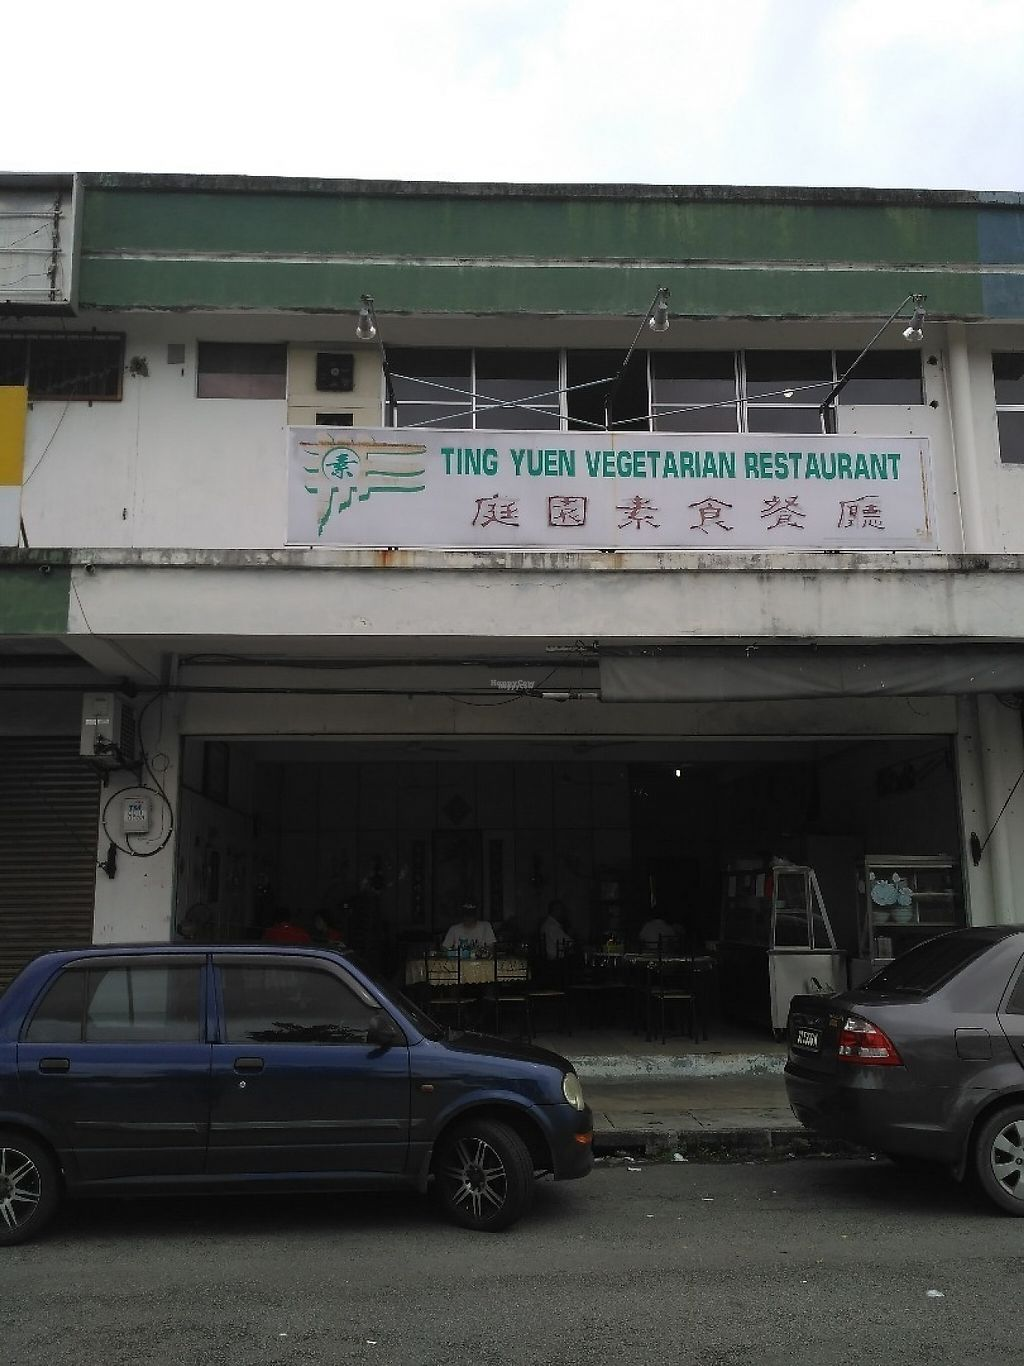 """Photo of Ting Yuen Vegetarian Restaurant  by <a href=""""/members/profile/SonjaAnshelm"""">SonjaAnshelm</a> <br/>Nice Chinese restaurant with veg chicken, veg duck, veg fish, tofu, vegetable and hot and cold drinks and jus. Very Good food if you in to the fake meat thing! One dish between RM 6 - RM 20. The owner is vegetarian since the 90's.  <br/> January 25, 2017  - <a href='/contact/abuse/image/21833/216681'>Report</a>"""